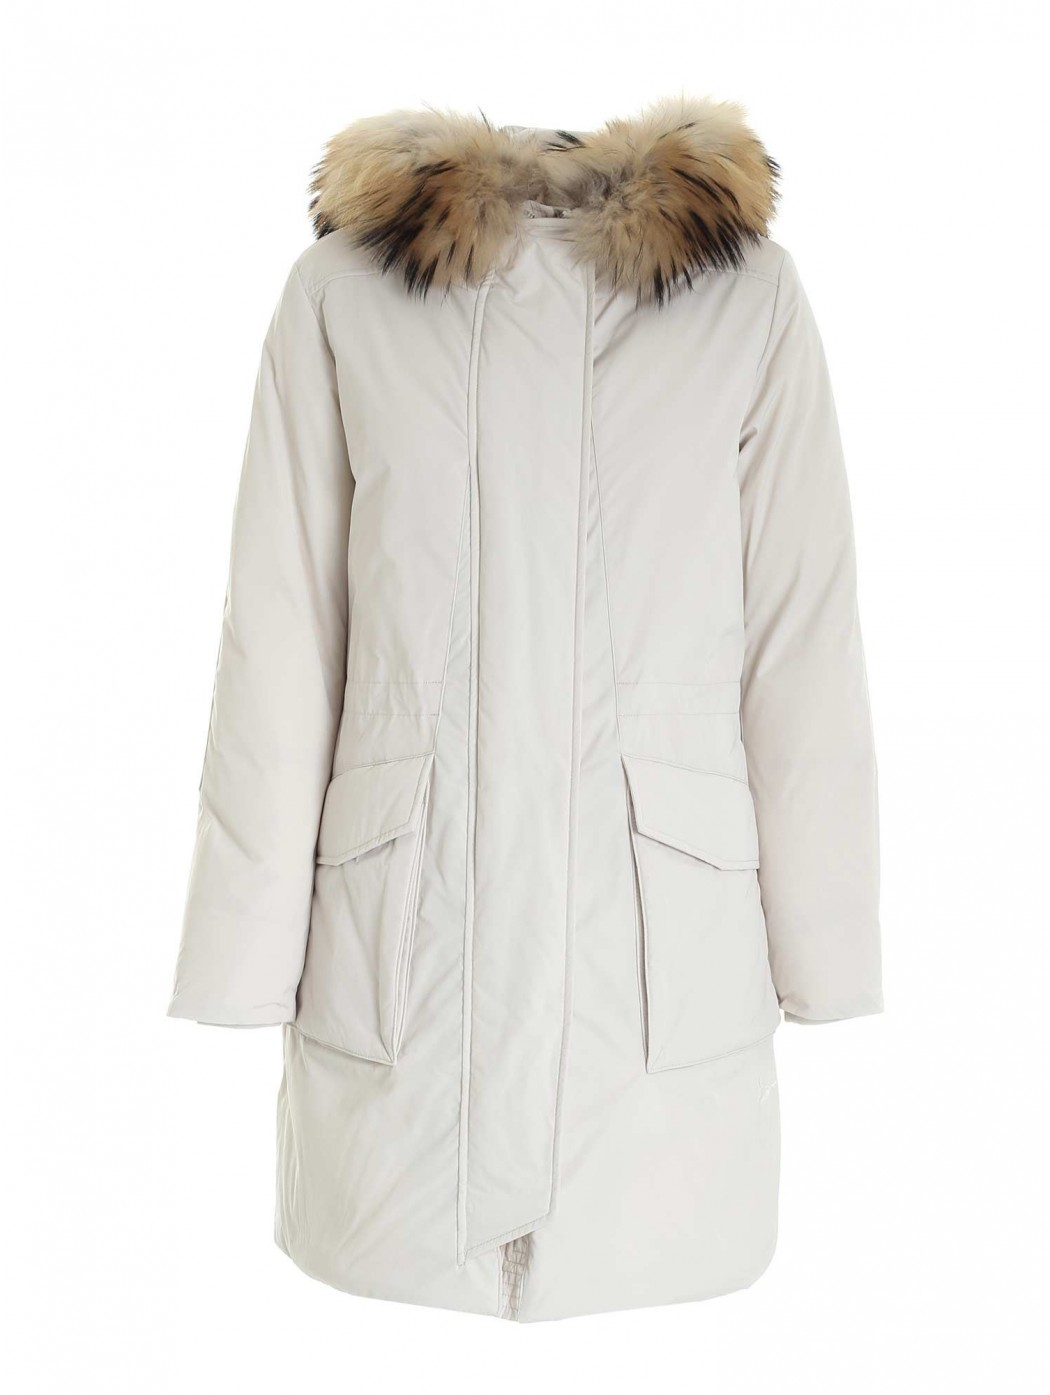 Military Parka in racoon fur